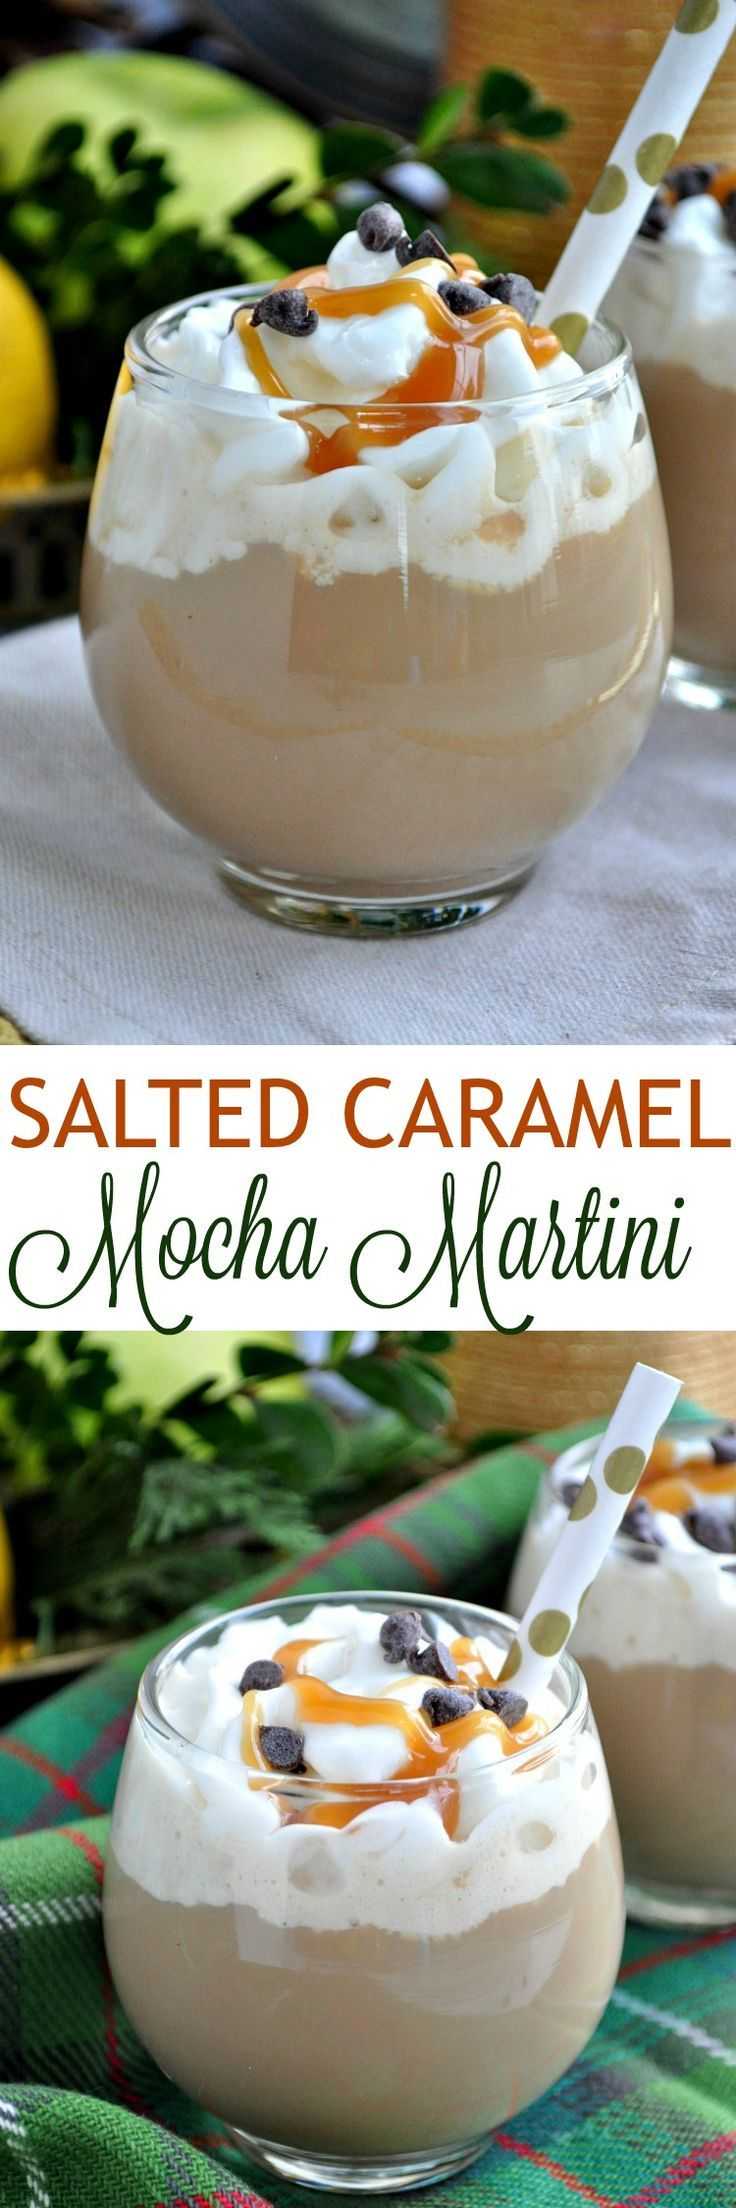 Serve a Salted Caramel Mocha Martini for a festive and cozy holiday cocktail this season!